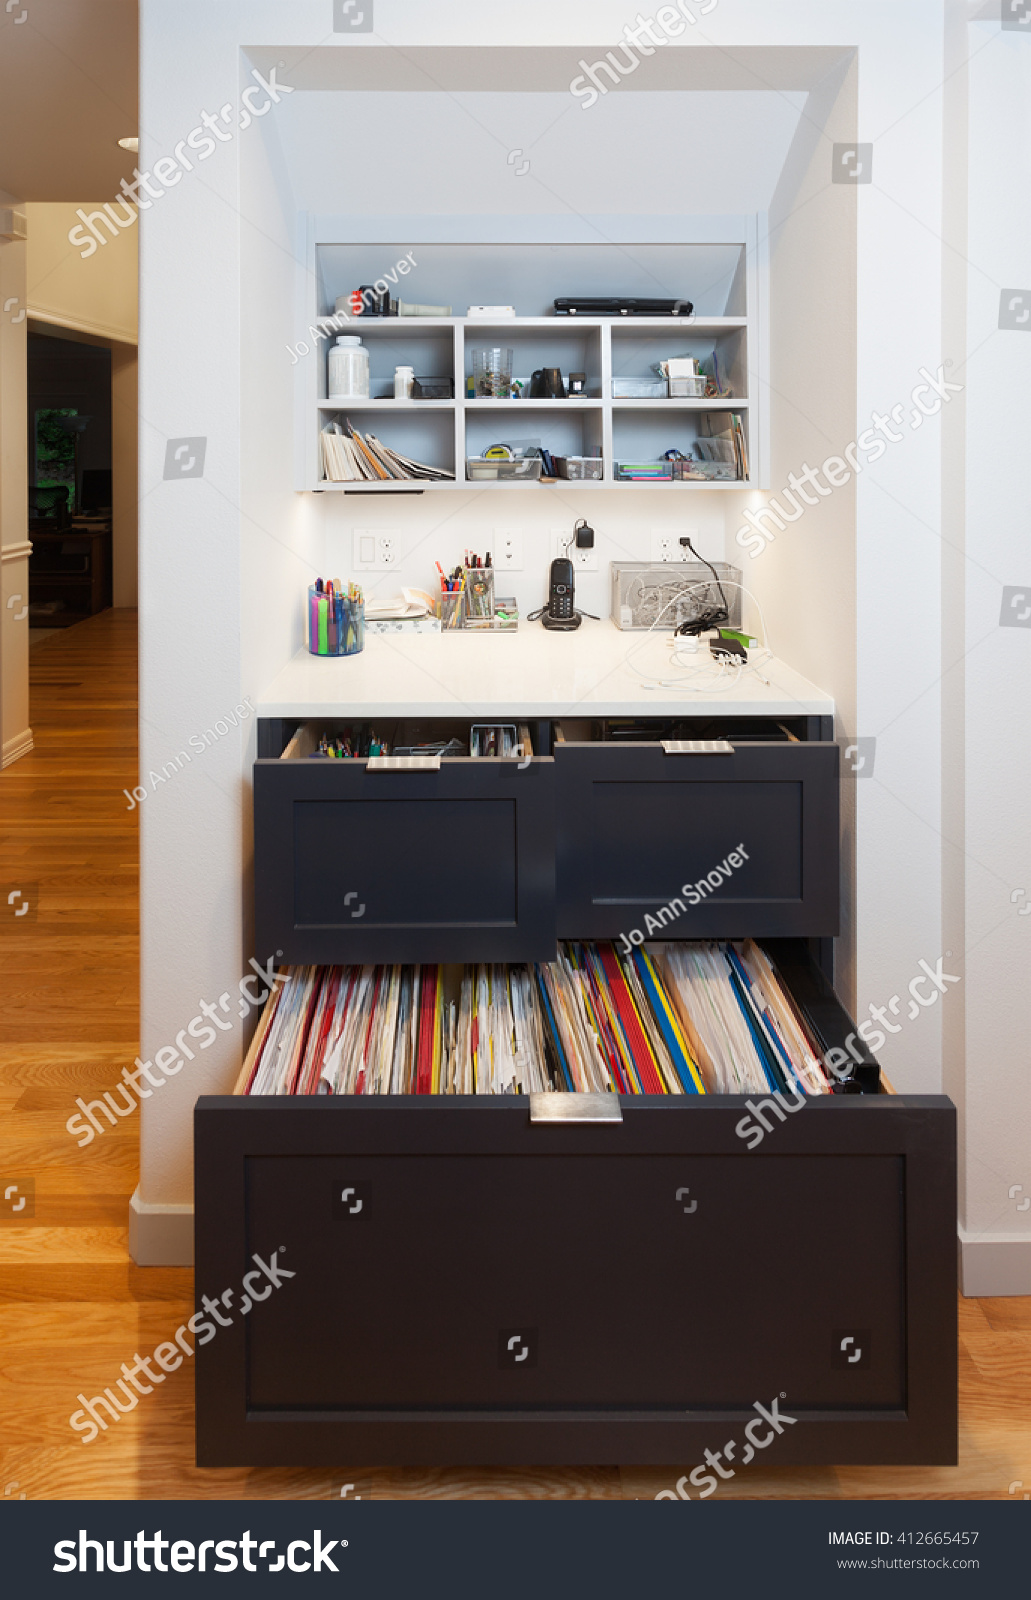 Kitchen Desk Kitchen Desk Area Drawers File Cabinet Stock Photo 412665457